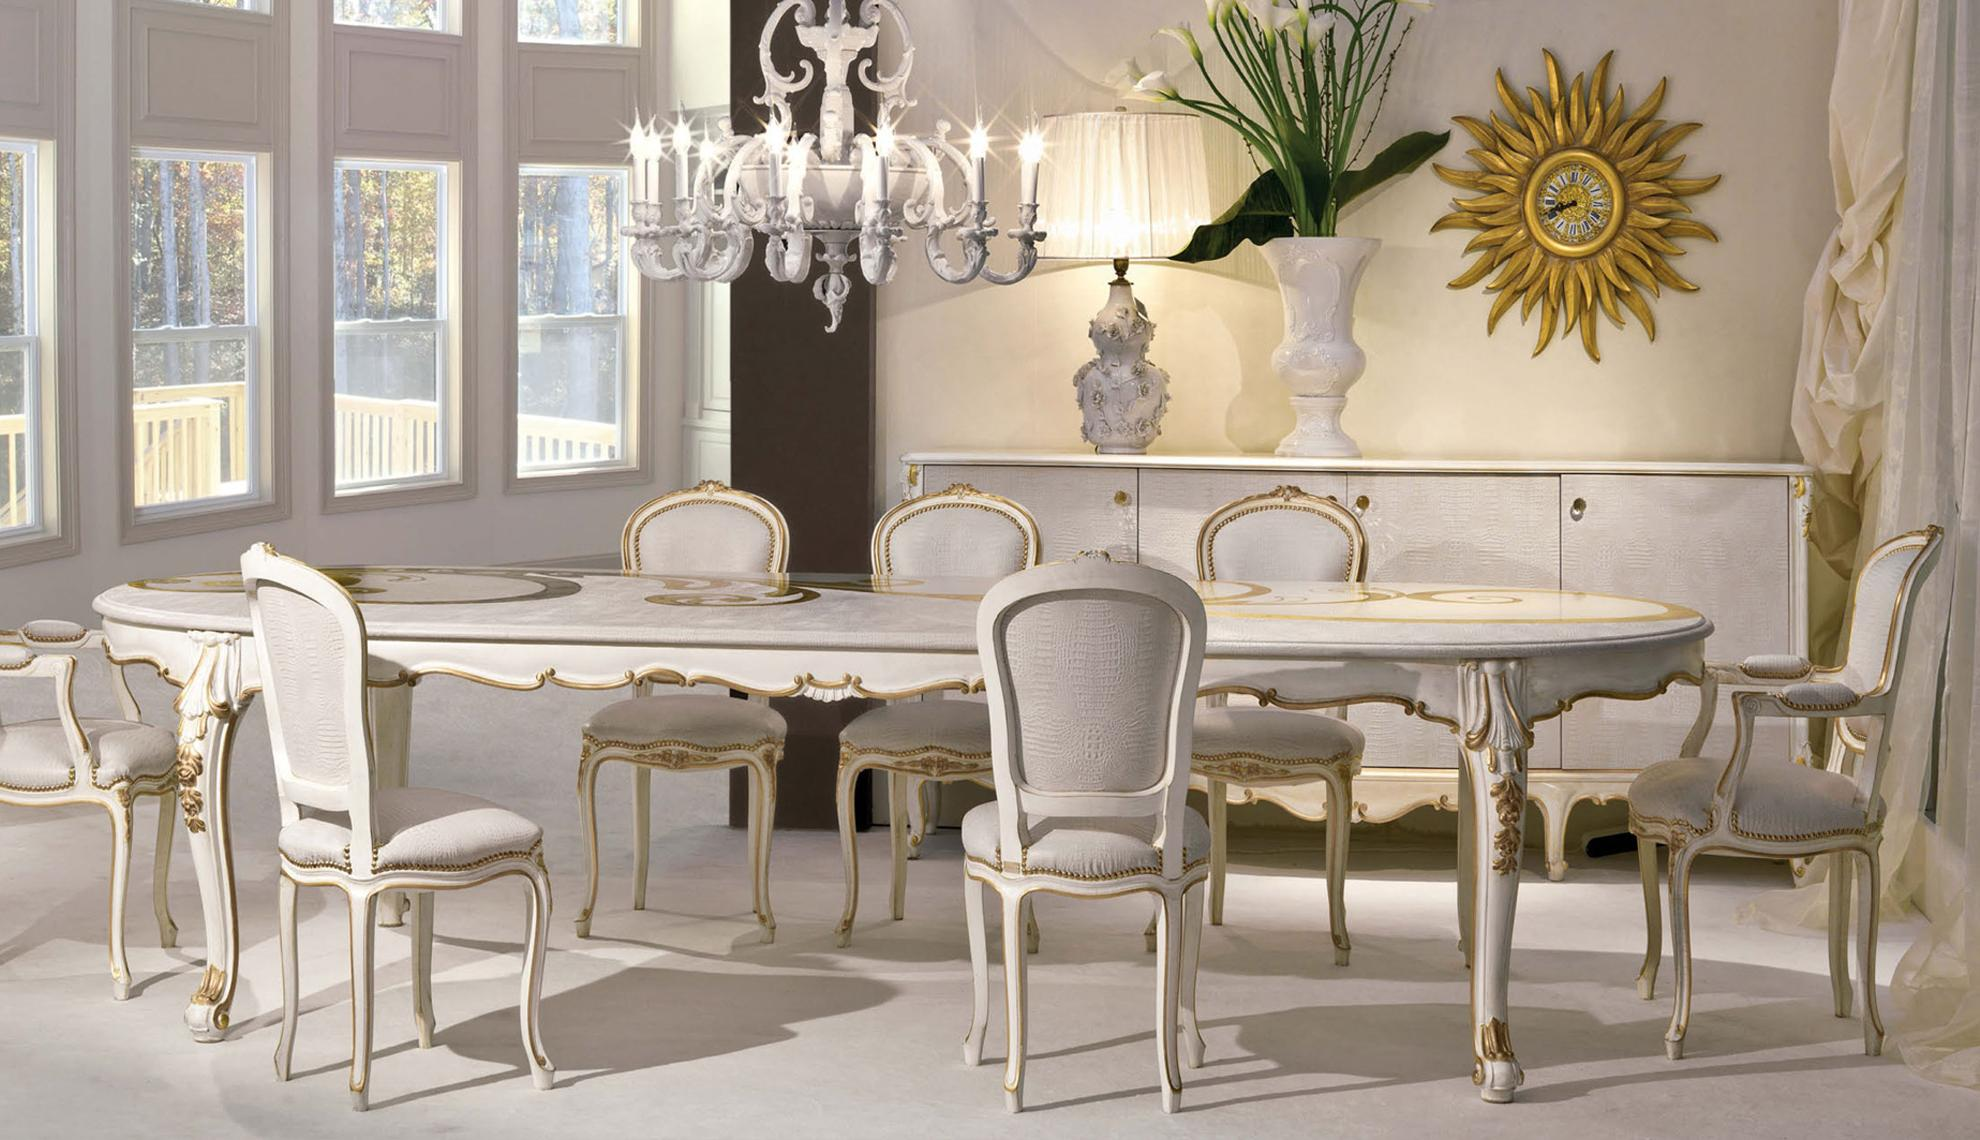 Dining room table and chairs ideas with images Dining room table and chairs